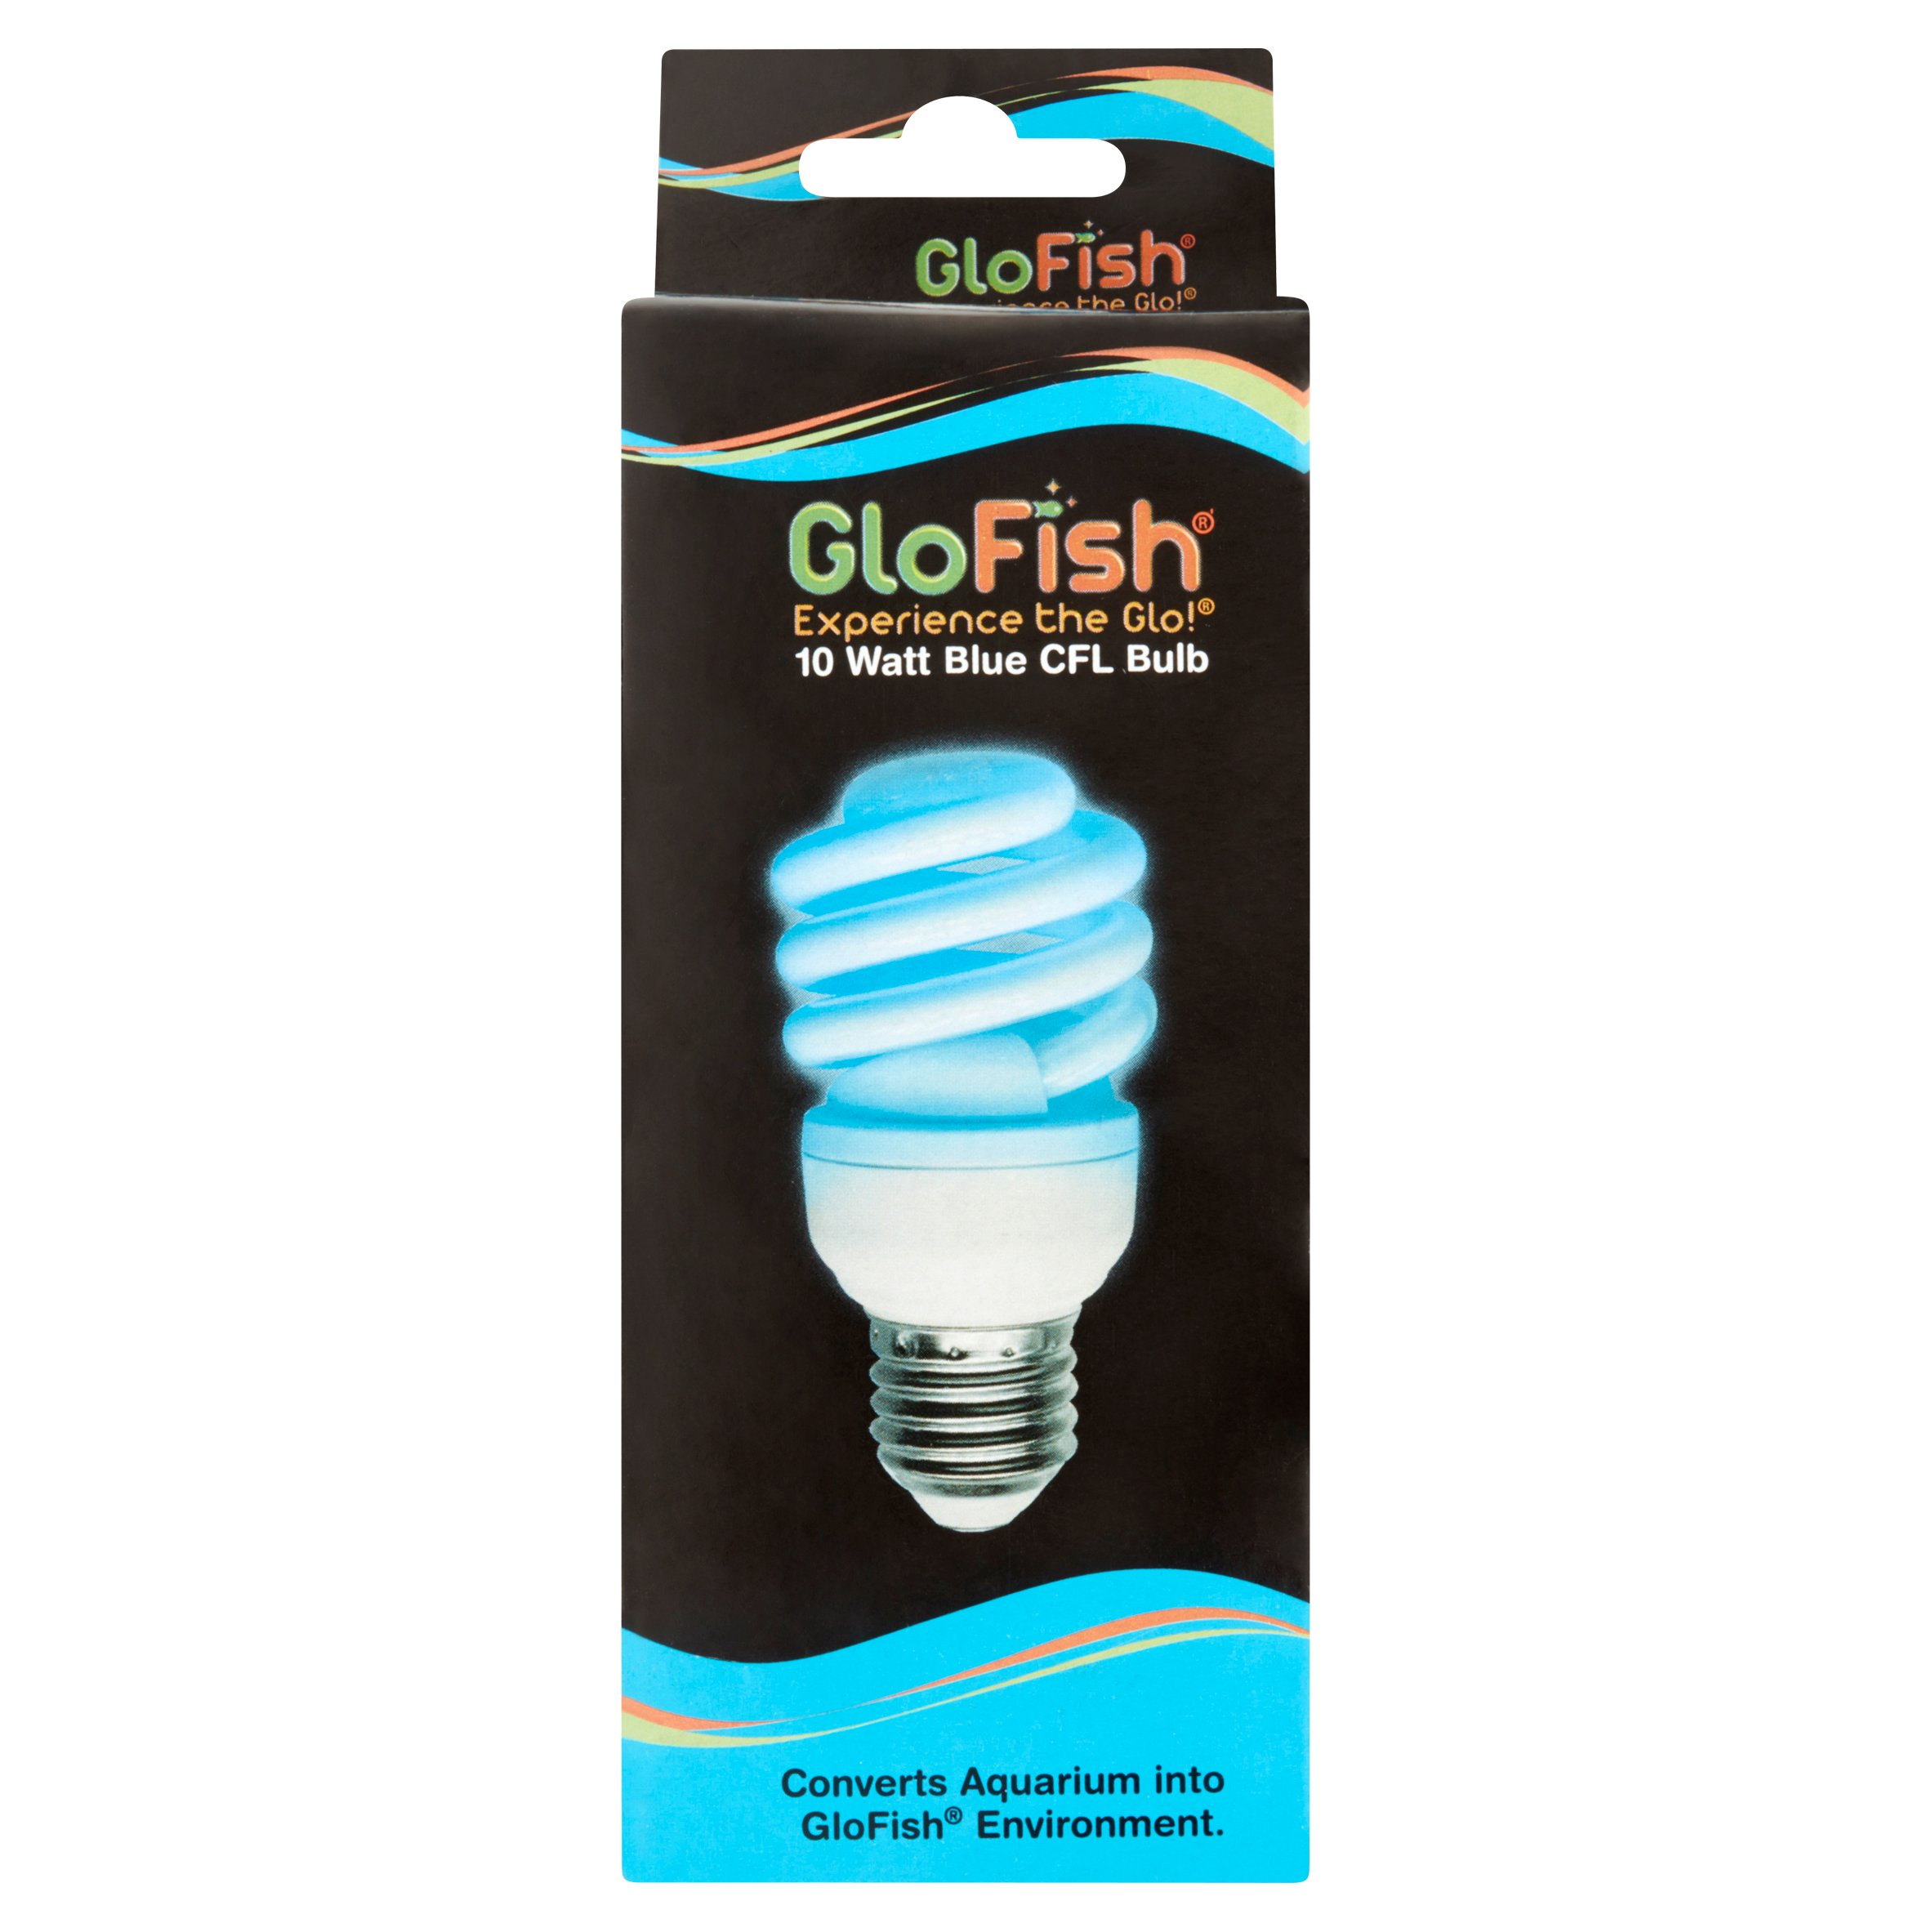 GloFish 10 Watt CFL Blue Fluorescent Light Bulb Replacement